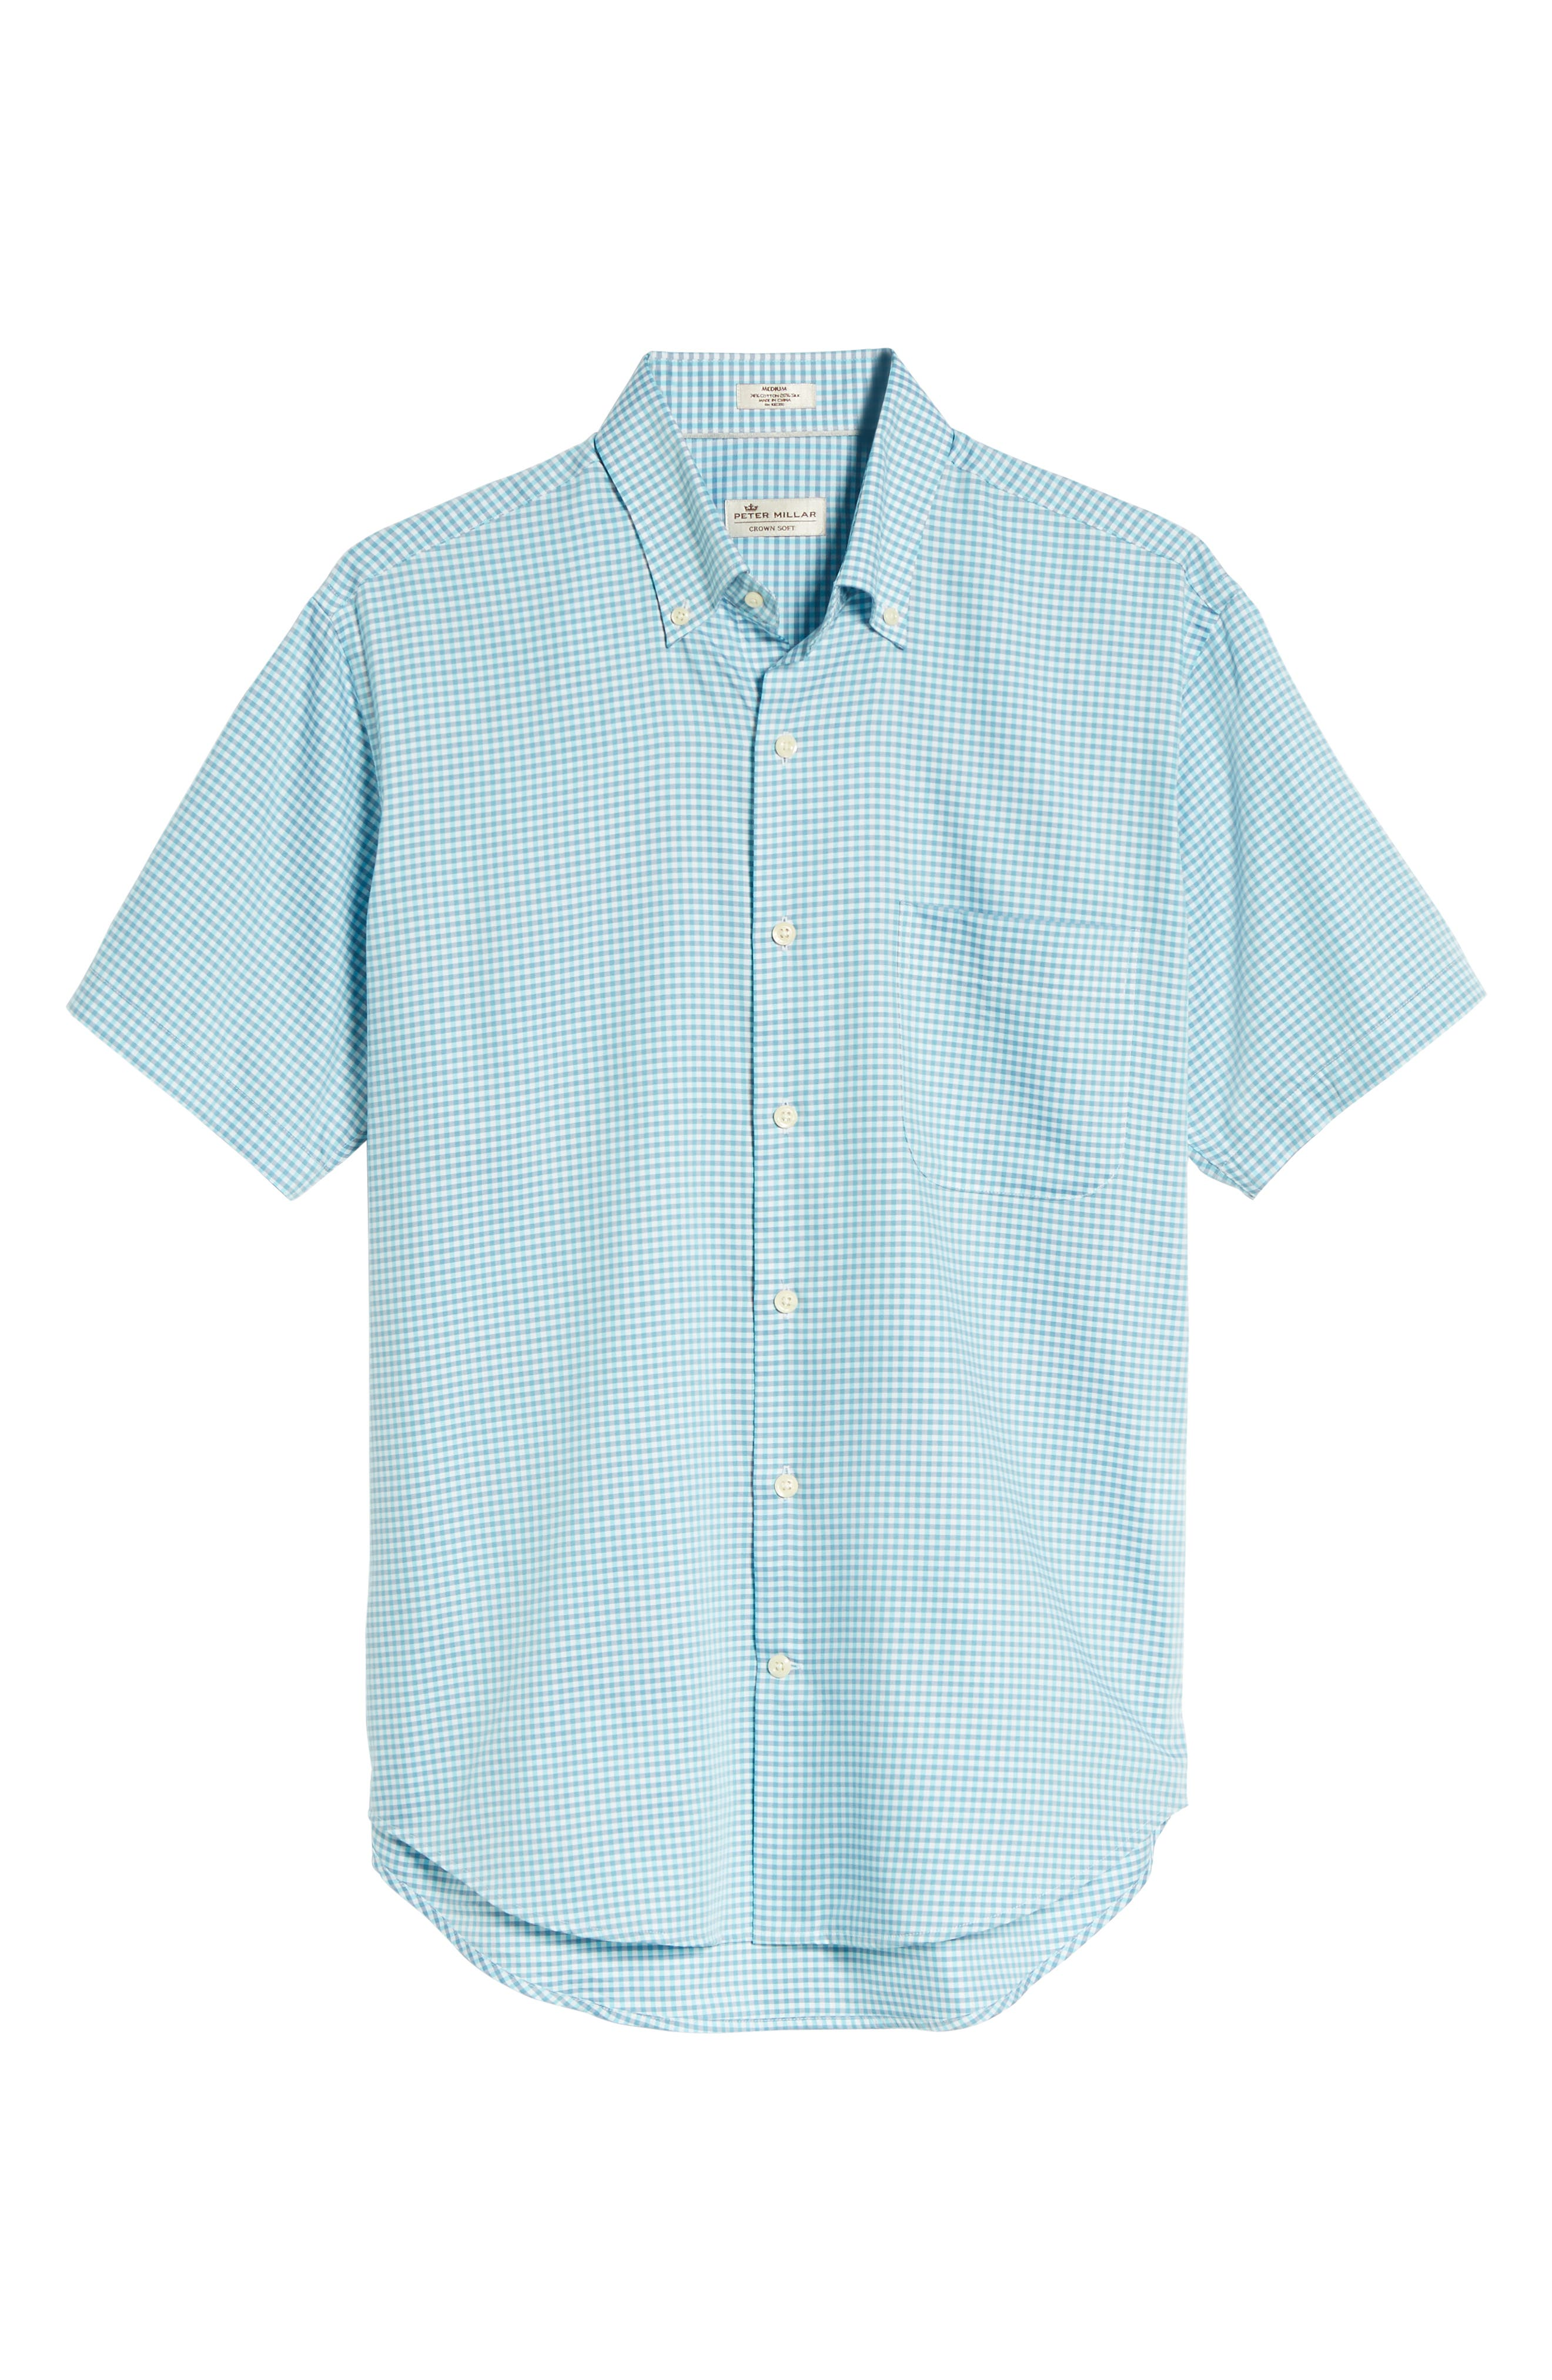 Crown Classic Fit Microcheck Sport Shirt,                             Alternate thumbnail 6, color,                             439